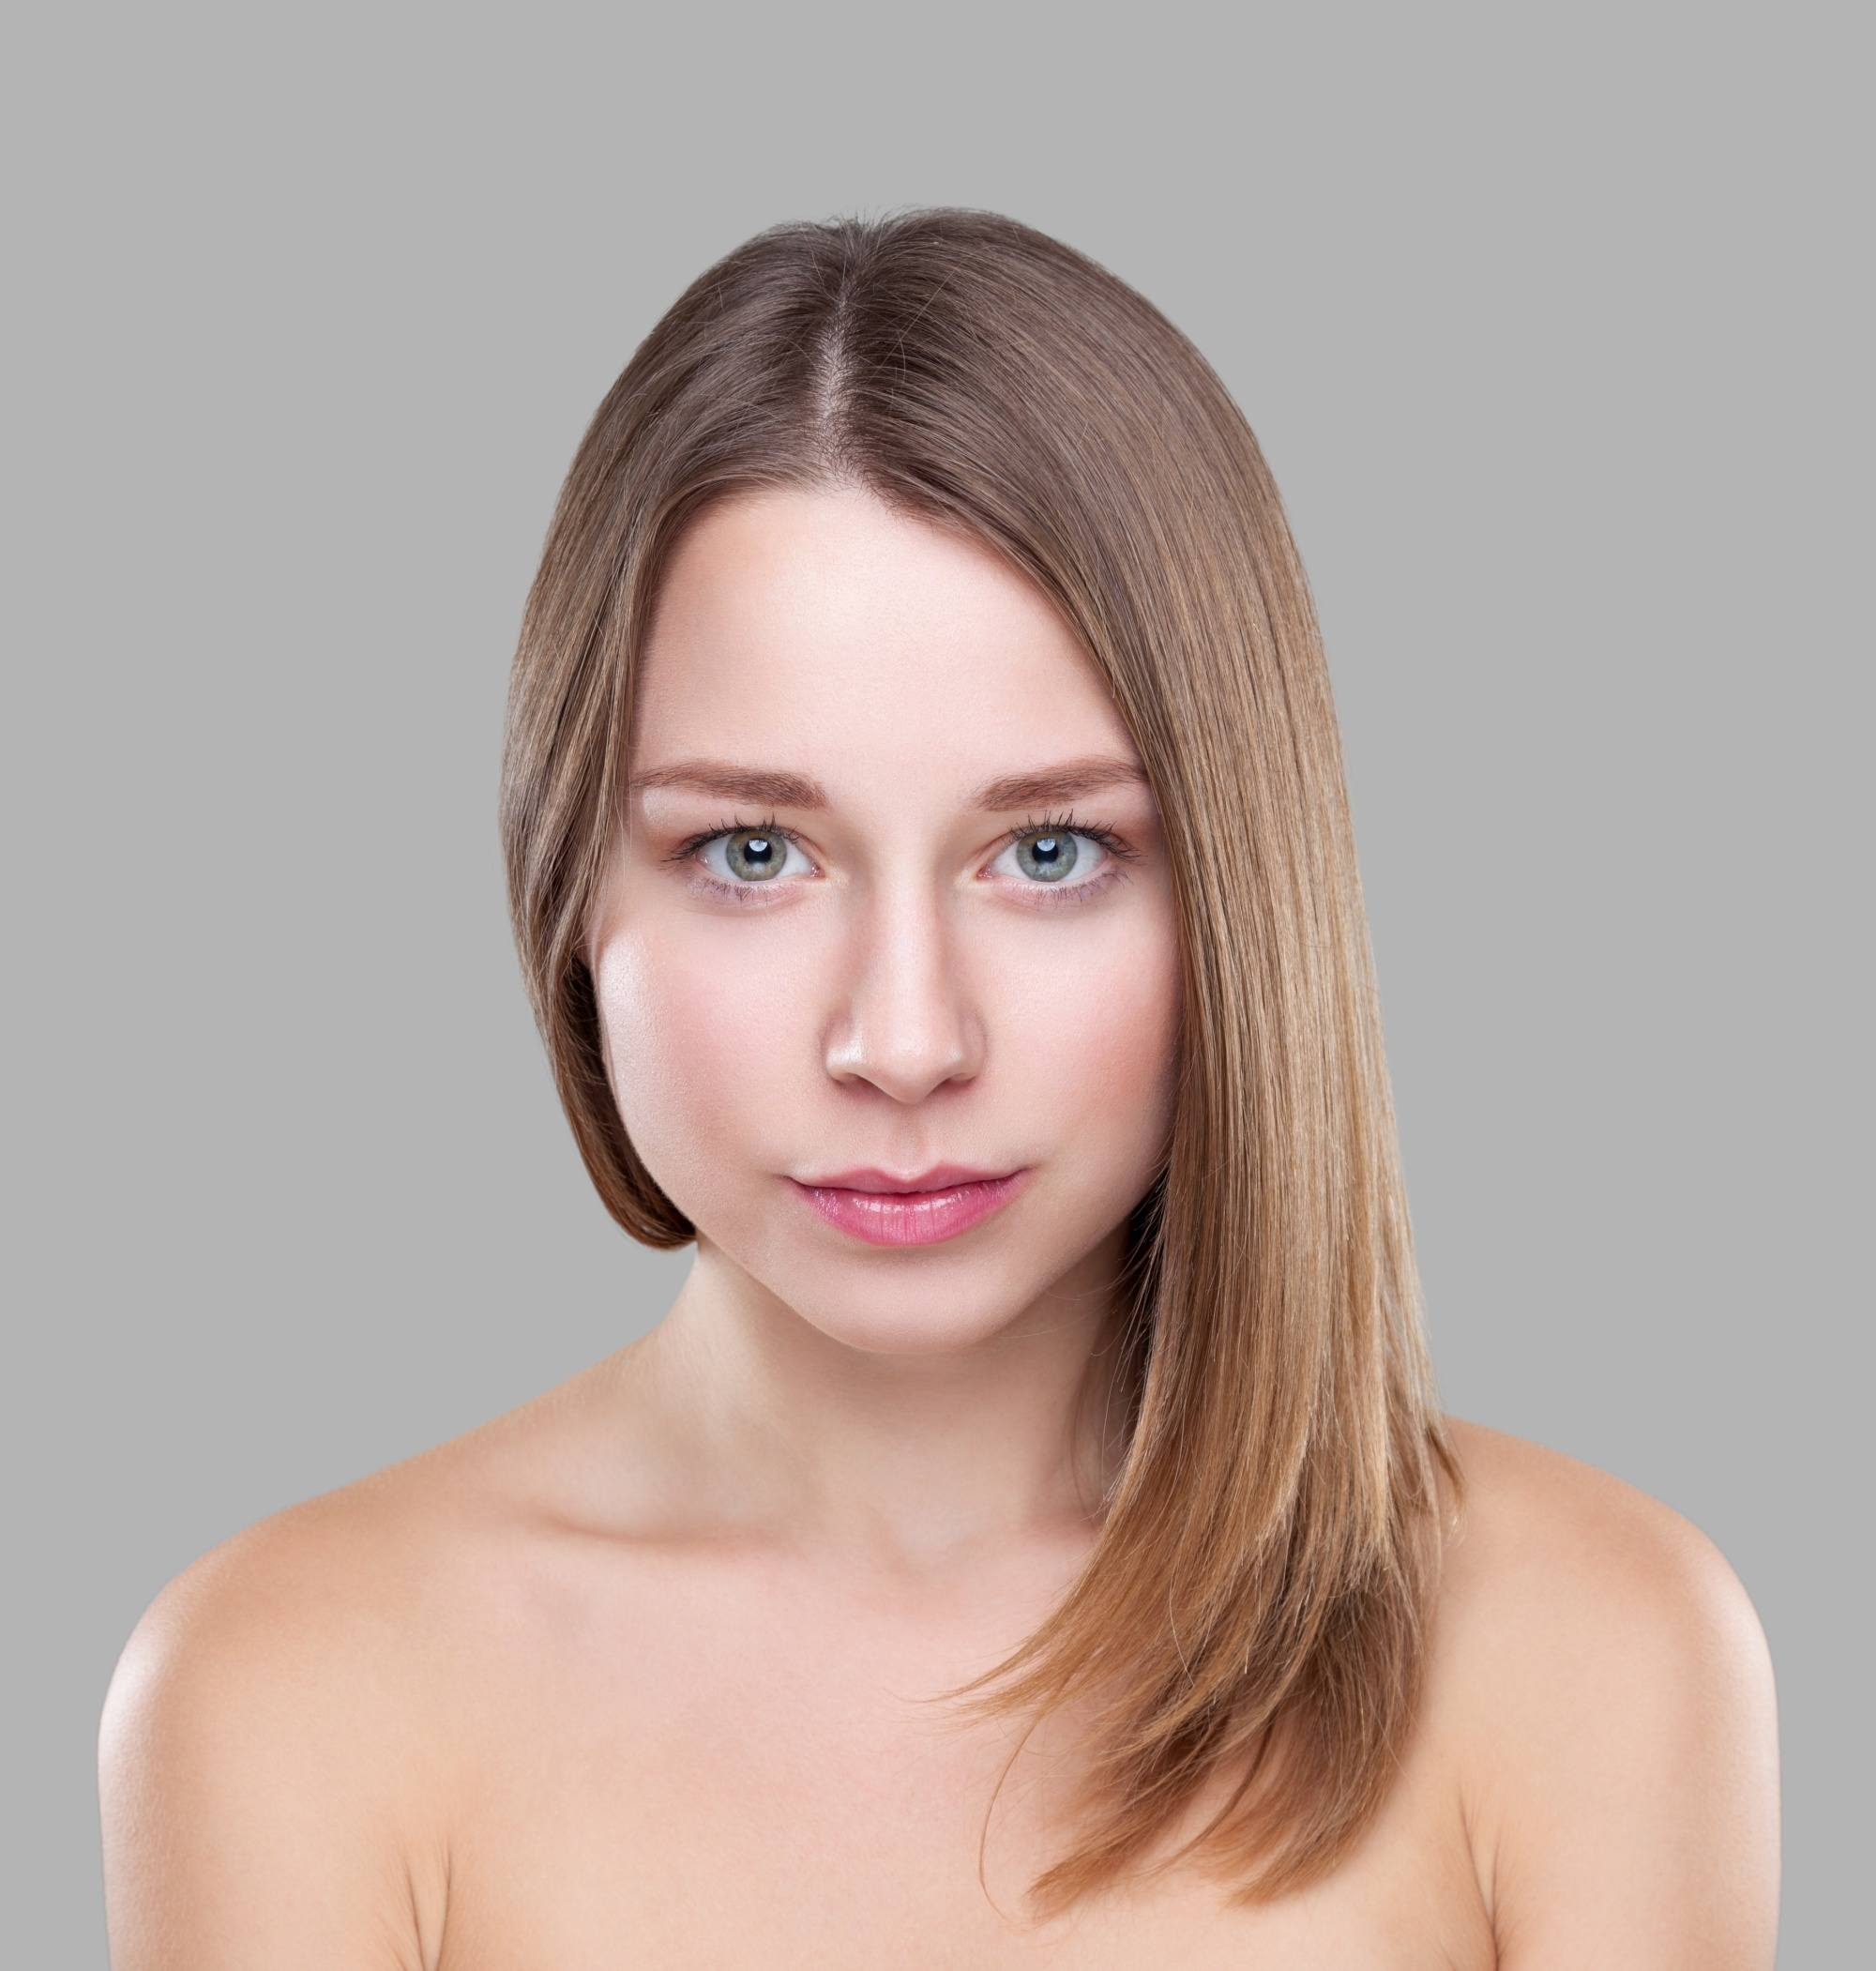 Golden brown hair color: Closeup shot of a woman with straight brown hair against a gray backdrop